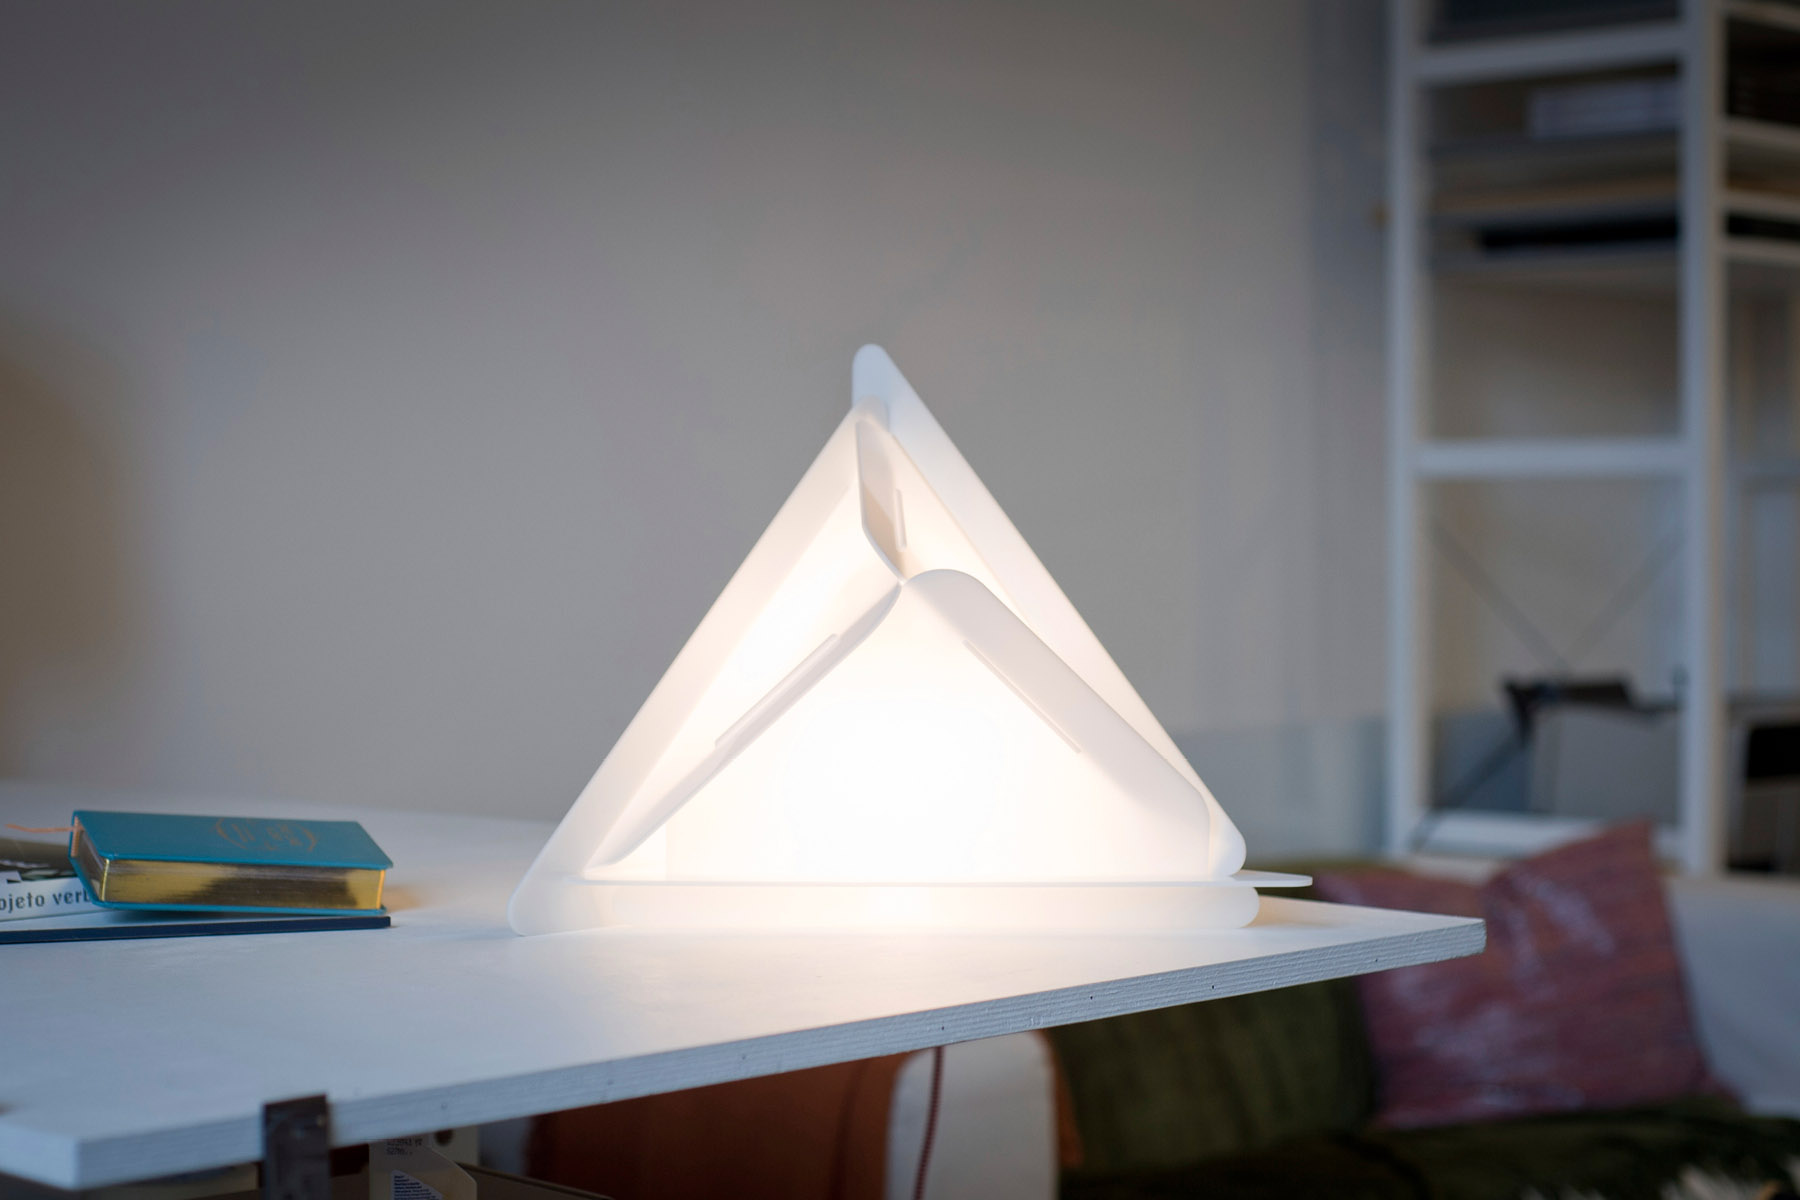 Triangular lamp on the side